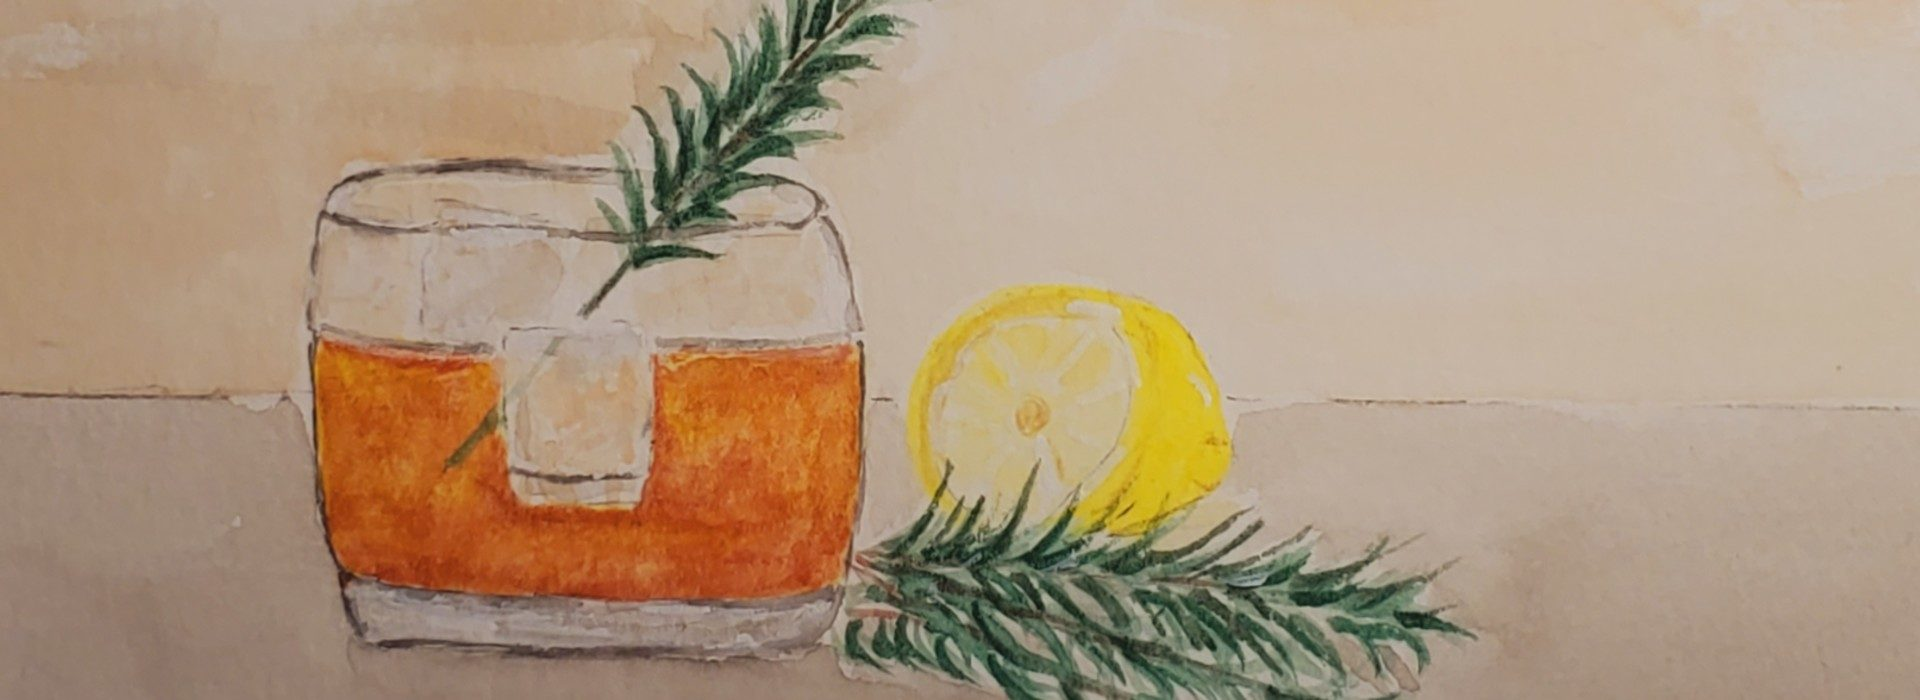 painting of a glass with orange drink and rosmary